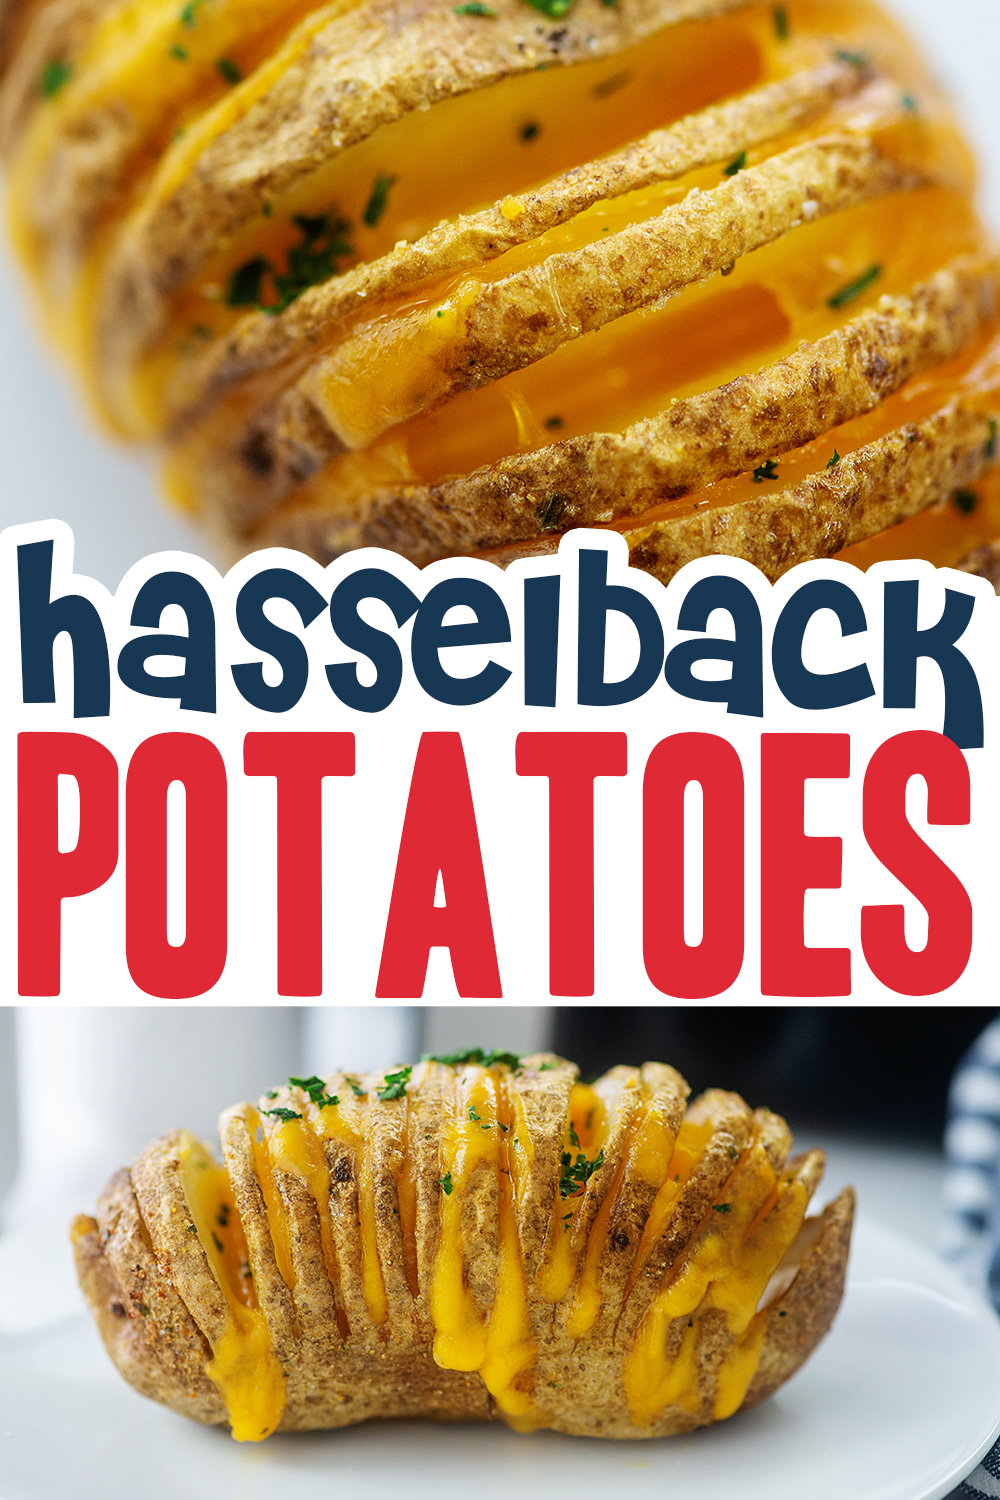 These are easy-to-make Hasselback potatoes that have a cheesy filling.  This is a side dish worth making!